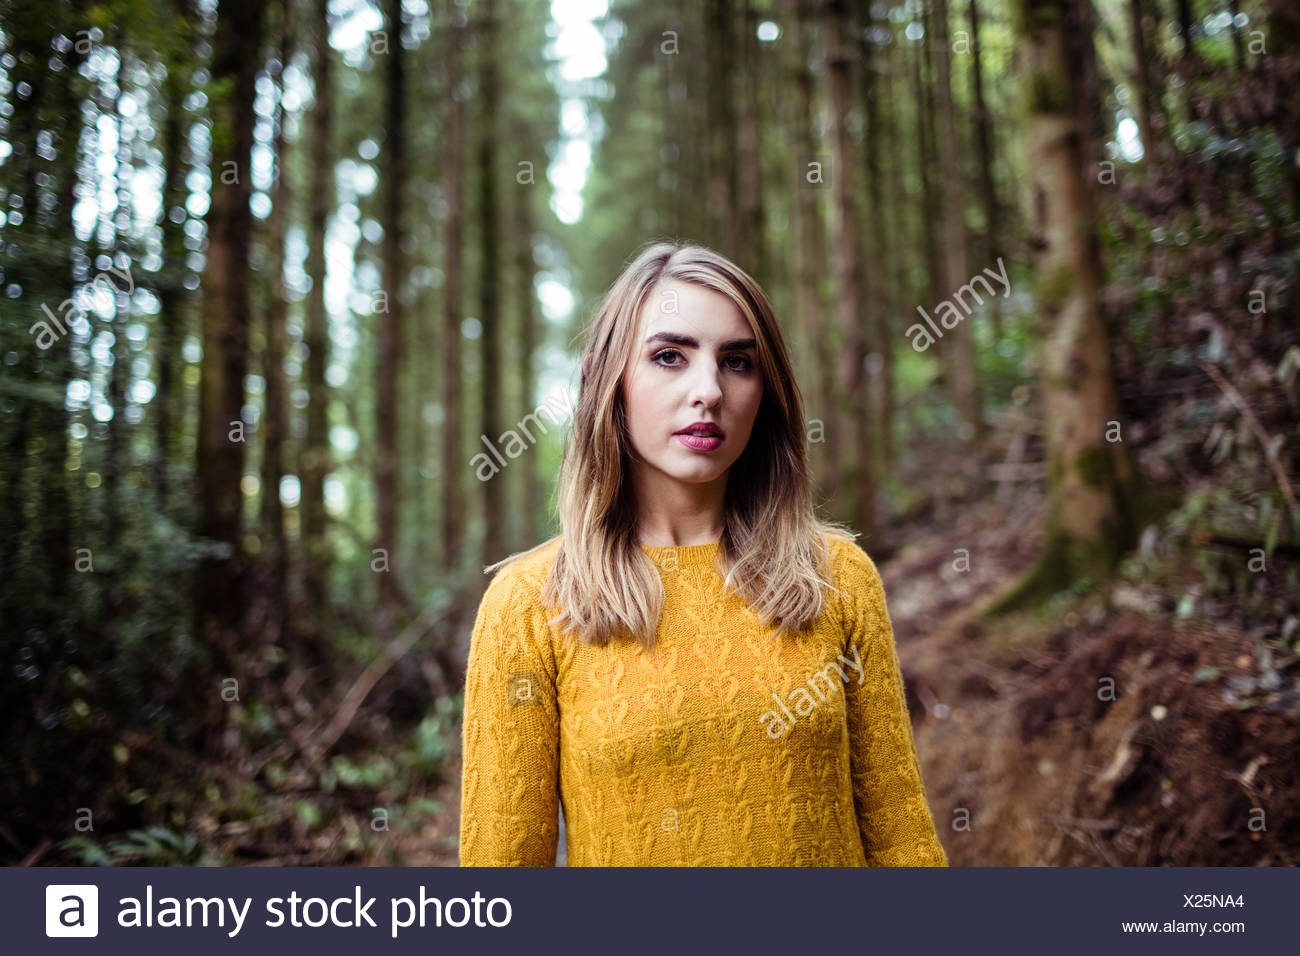 Jolie blonde woman smiling at camera Photo Stock